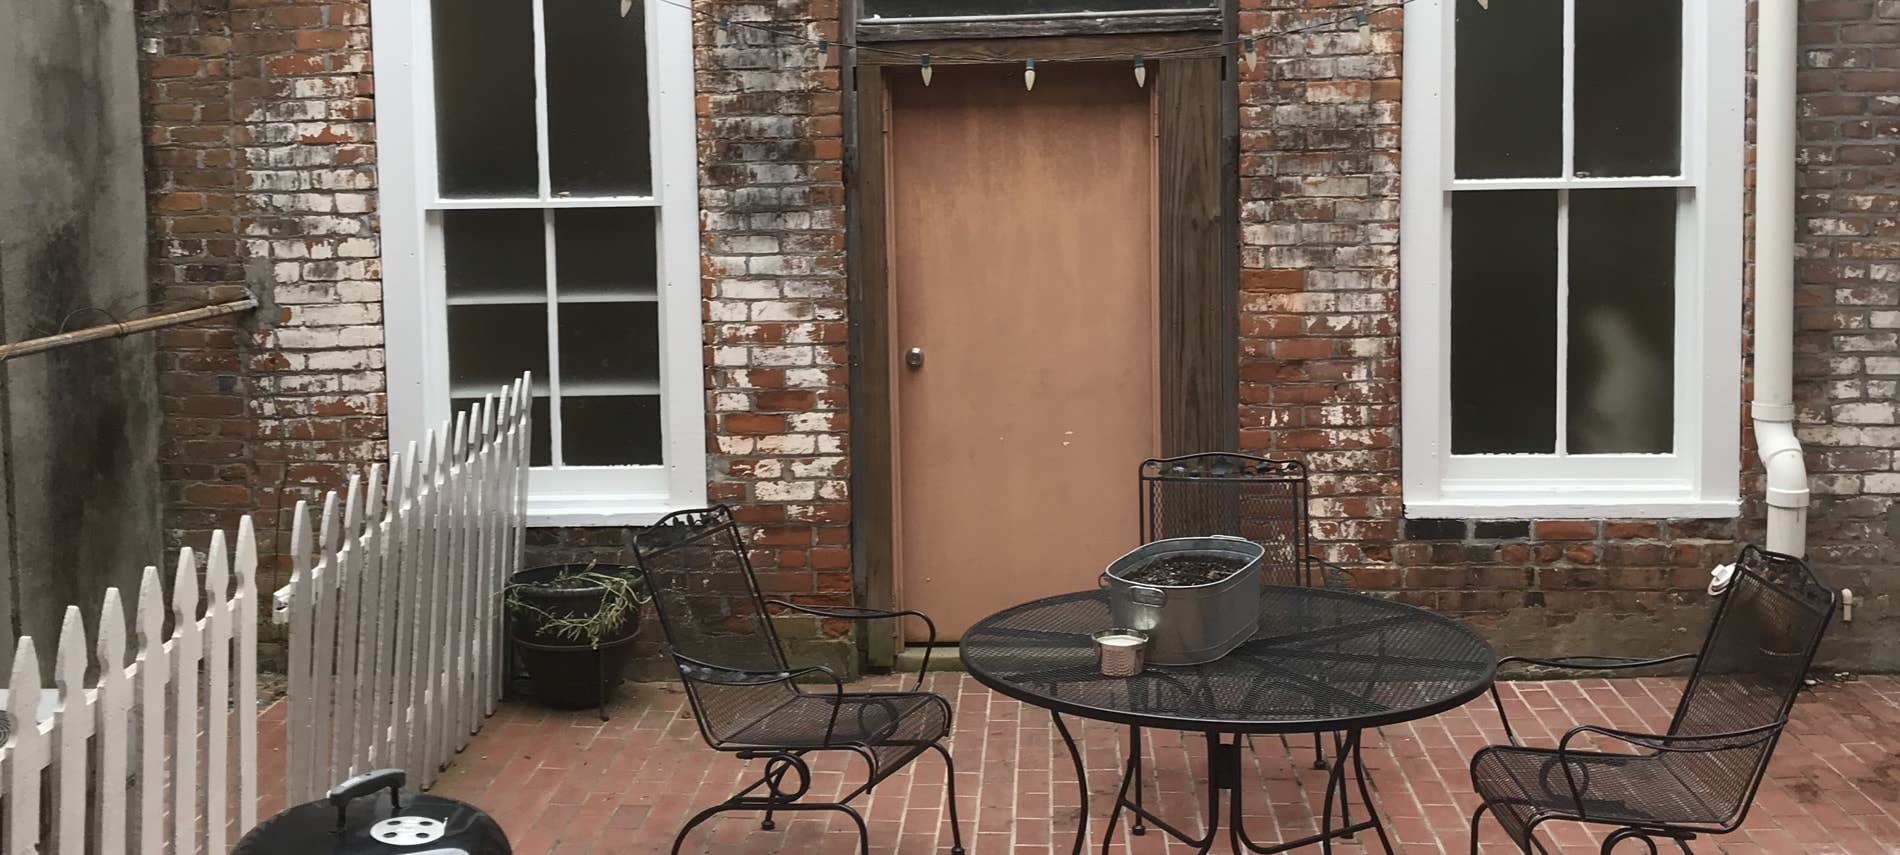 Porch area in front of b&b with rustic brick siding and tan door, black metal patio furniture, brick flooring, and white fencing